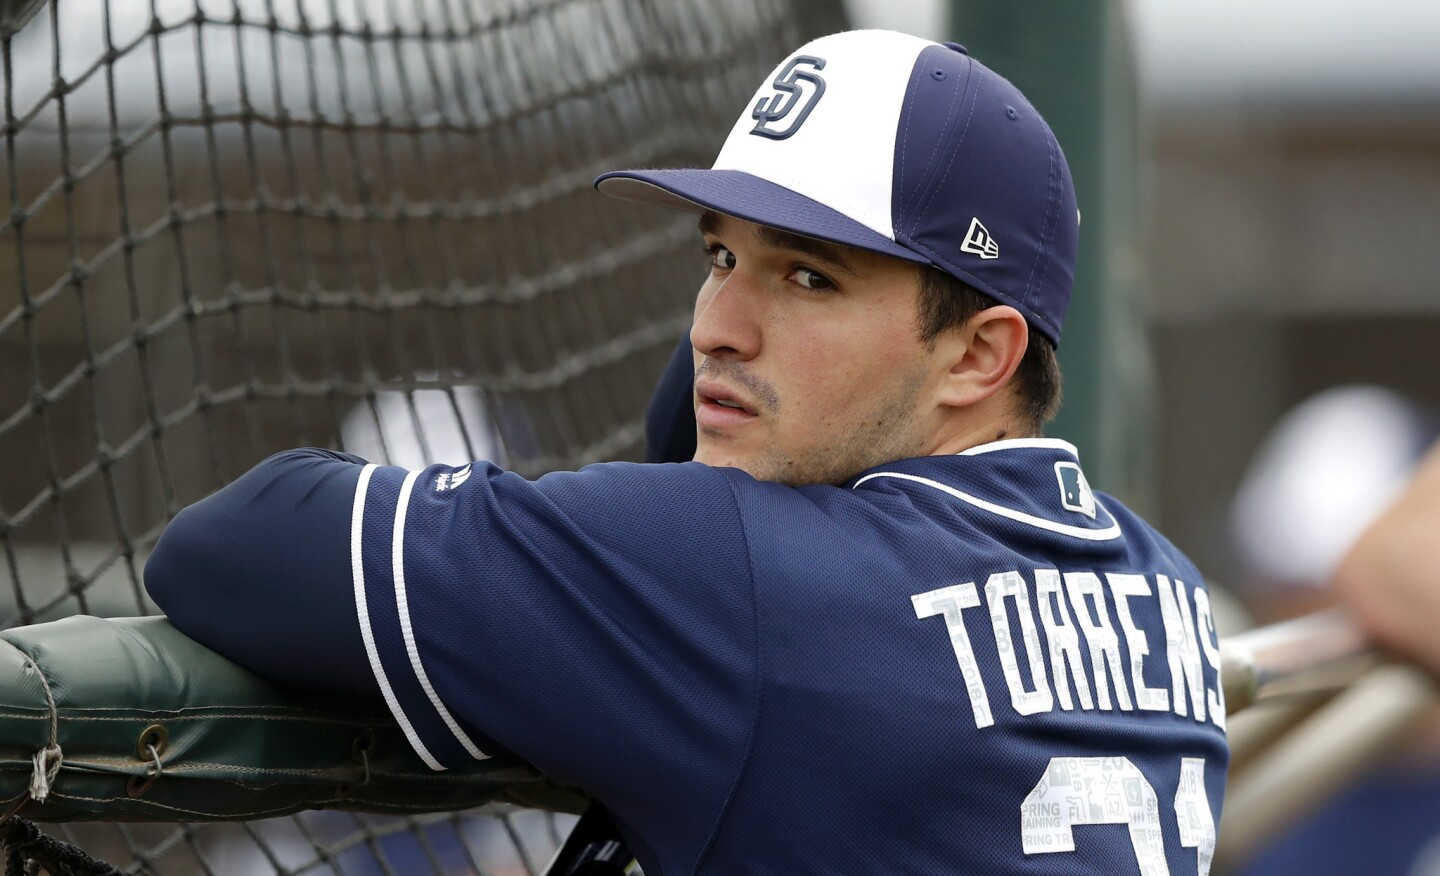 San Diego Padres catcher Luis Torrens waits to hit in the batting cage during a baseball spring training workout, Friday, Feb. 16, 2018, in Peoria, Ariz. (AP Photo/Charlie Neibergall)